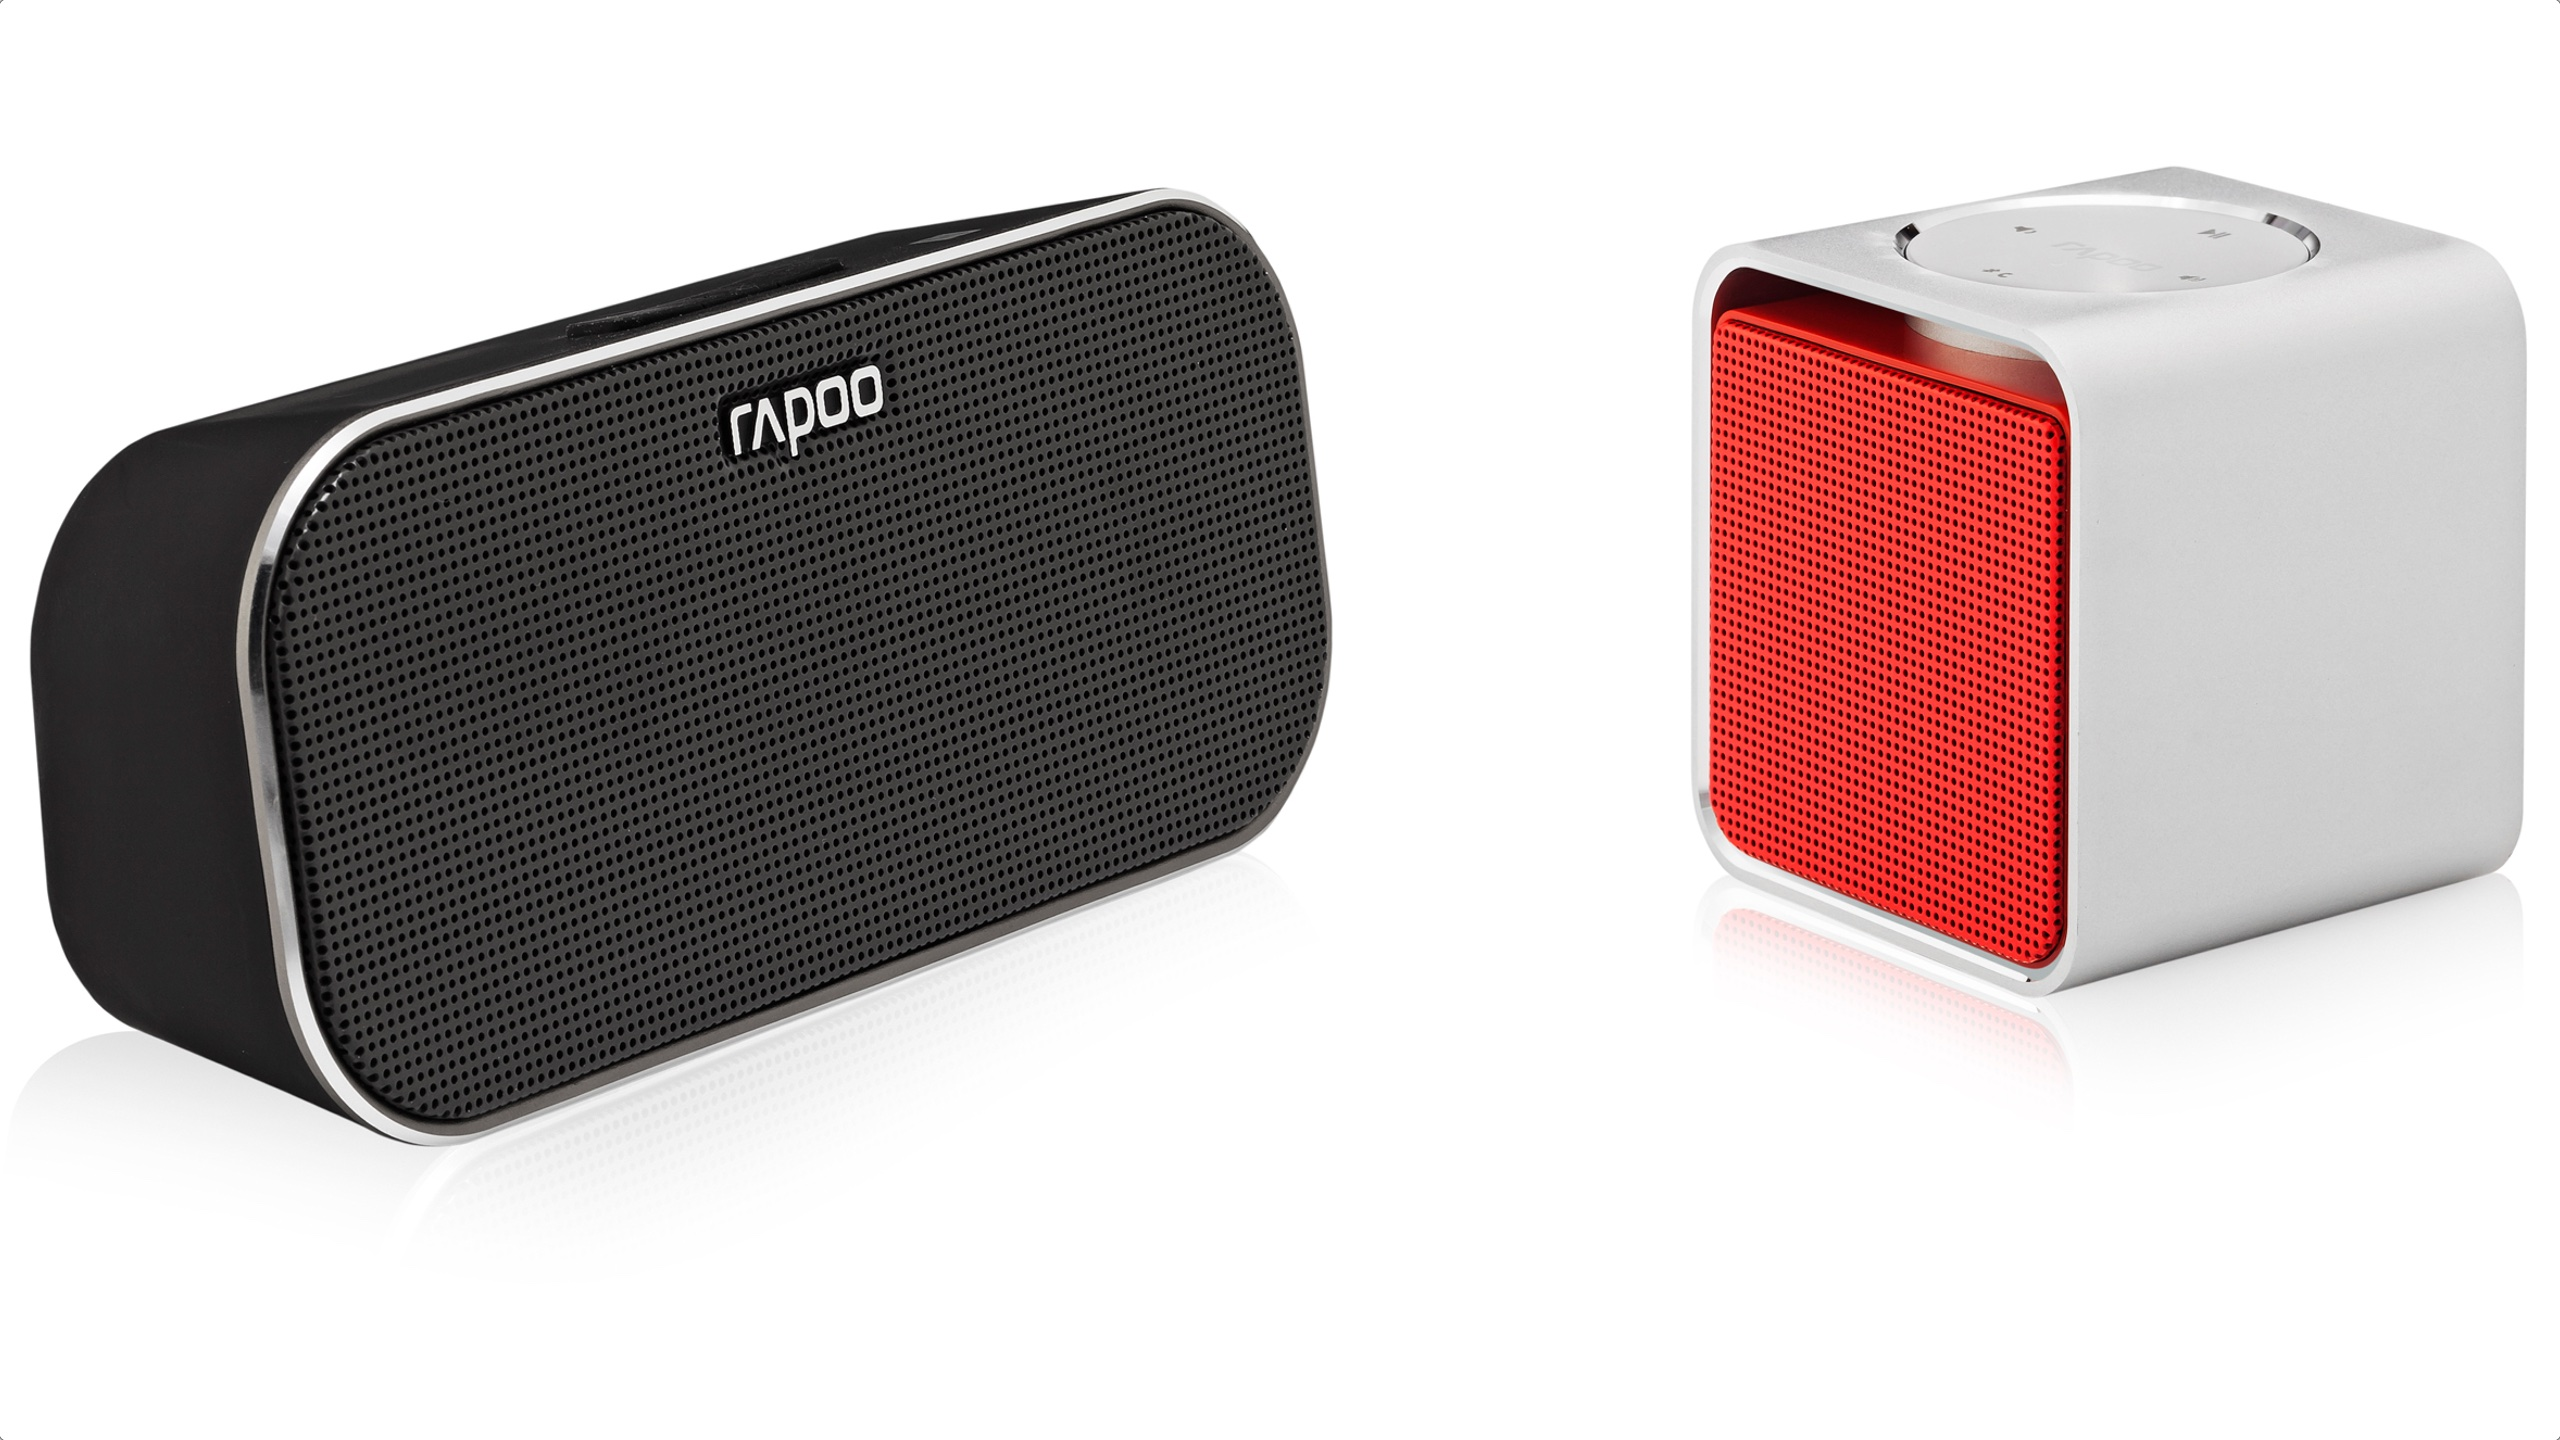 rapoo-a300-a500-bluetooth-speakers-nfc